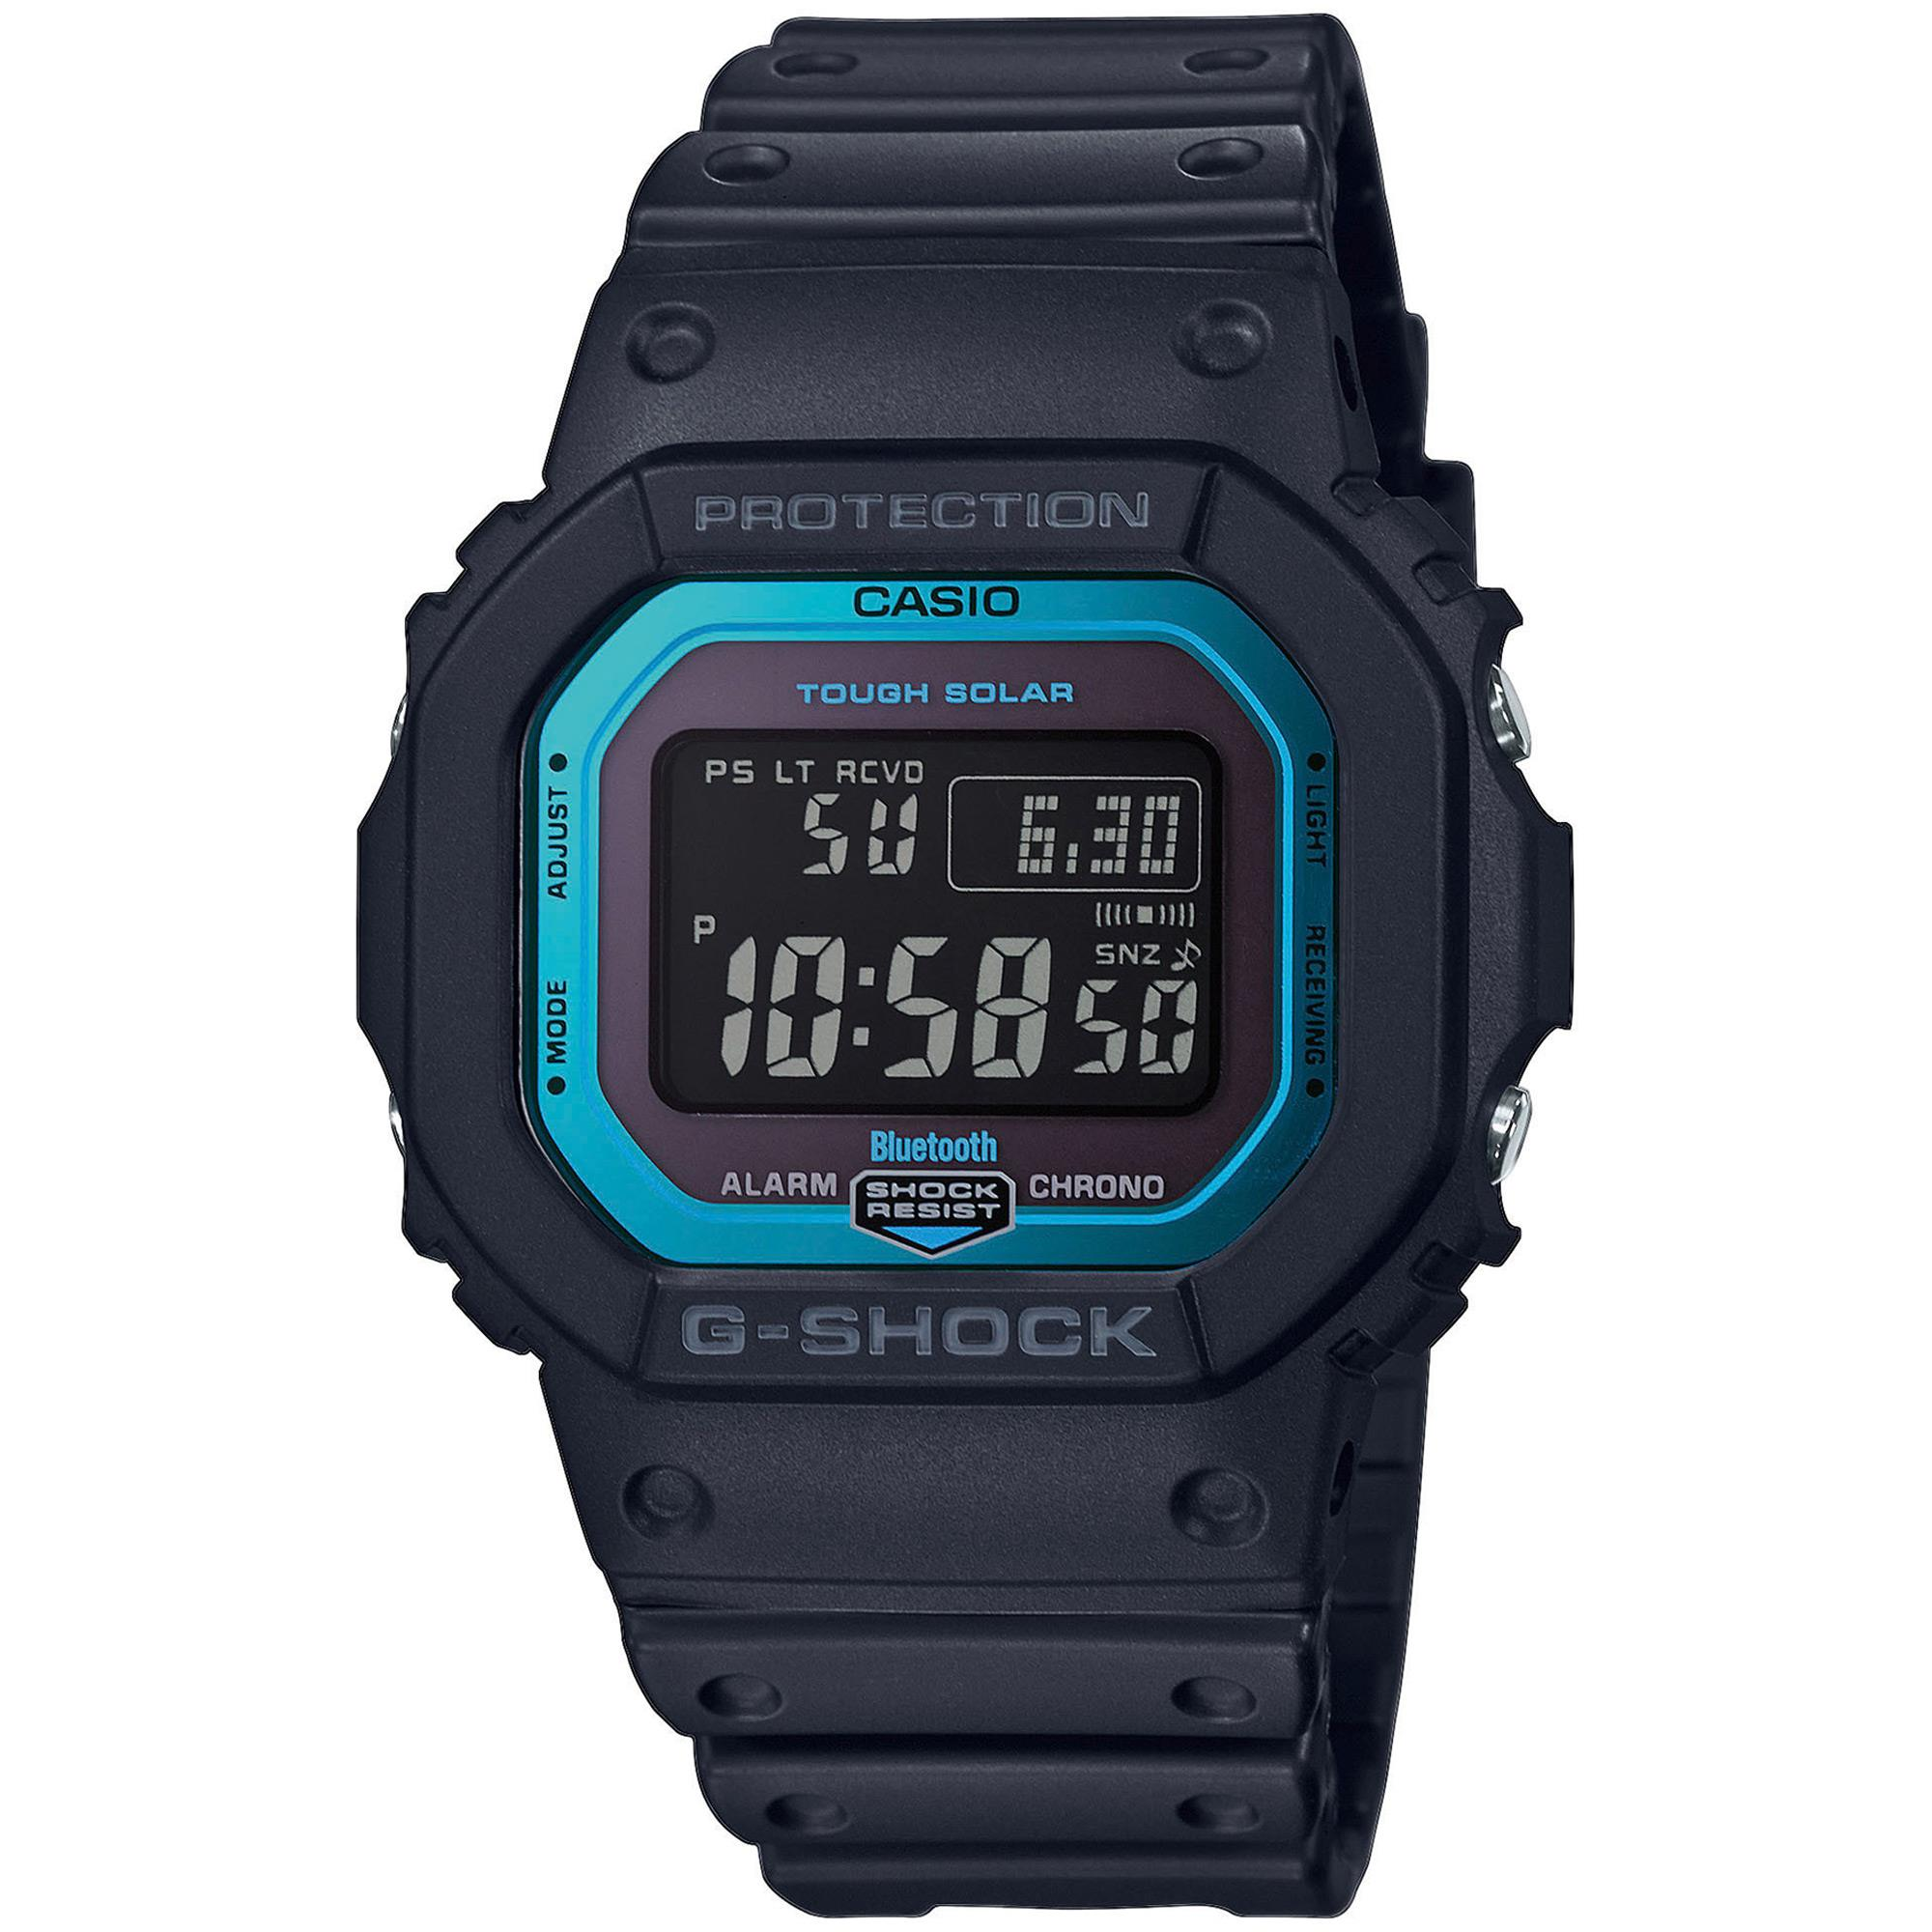 Orologio digitale uomo Casio G-Shock - CASIO